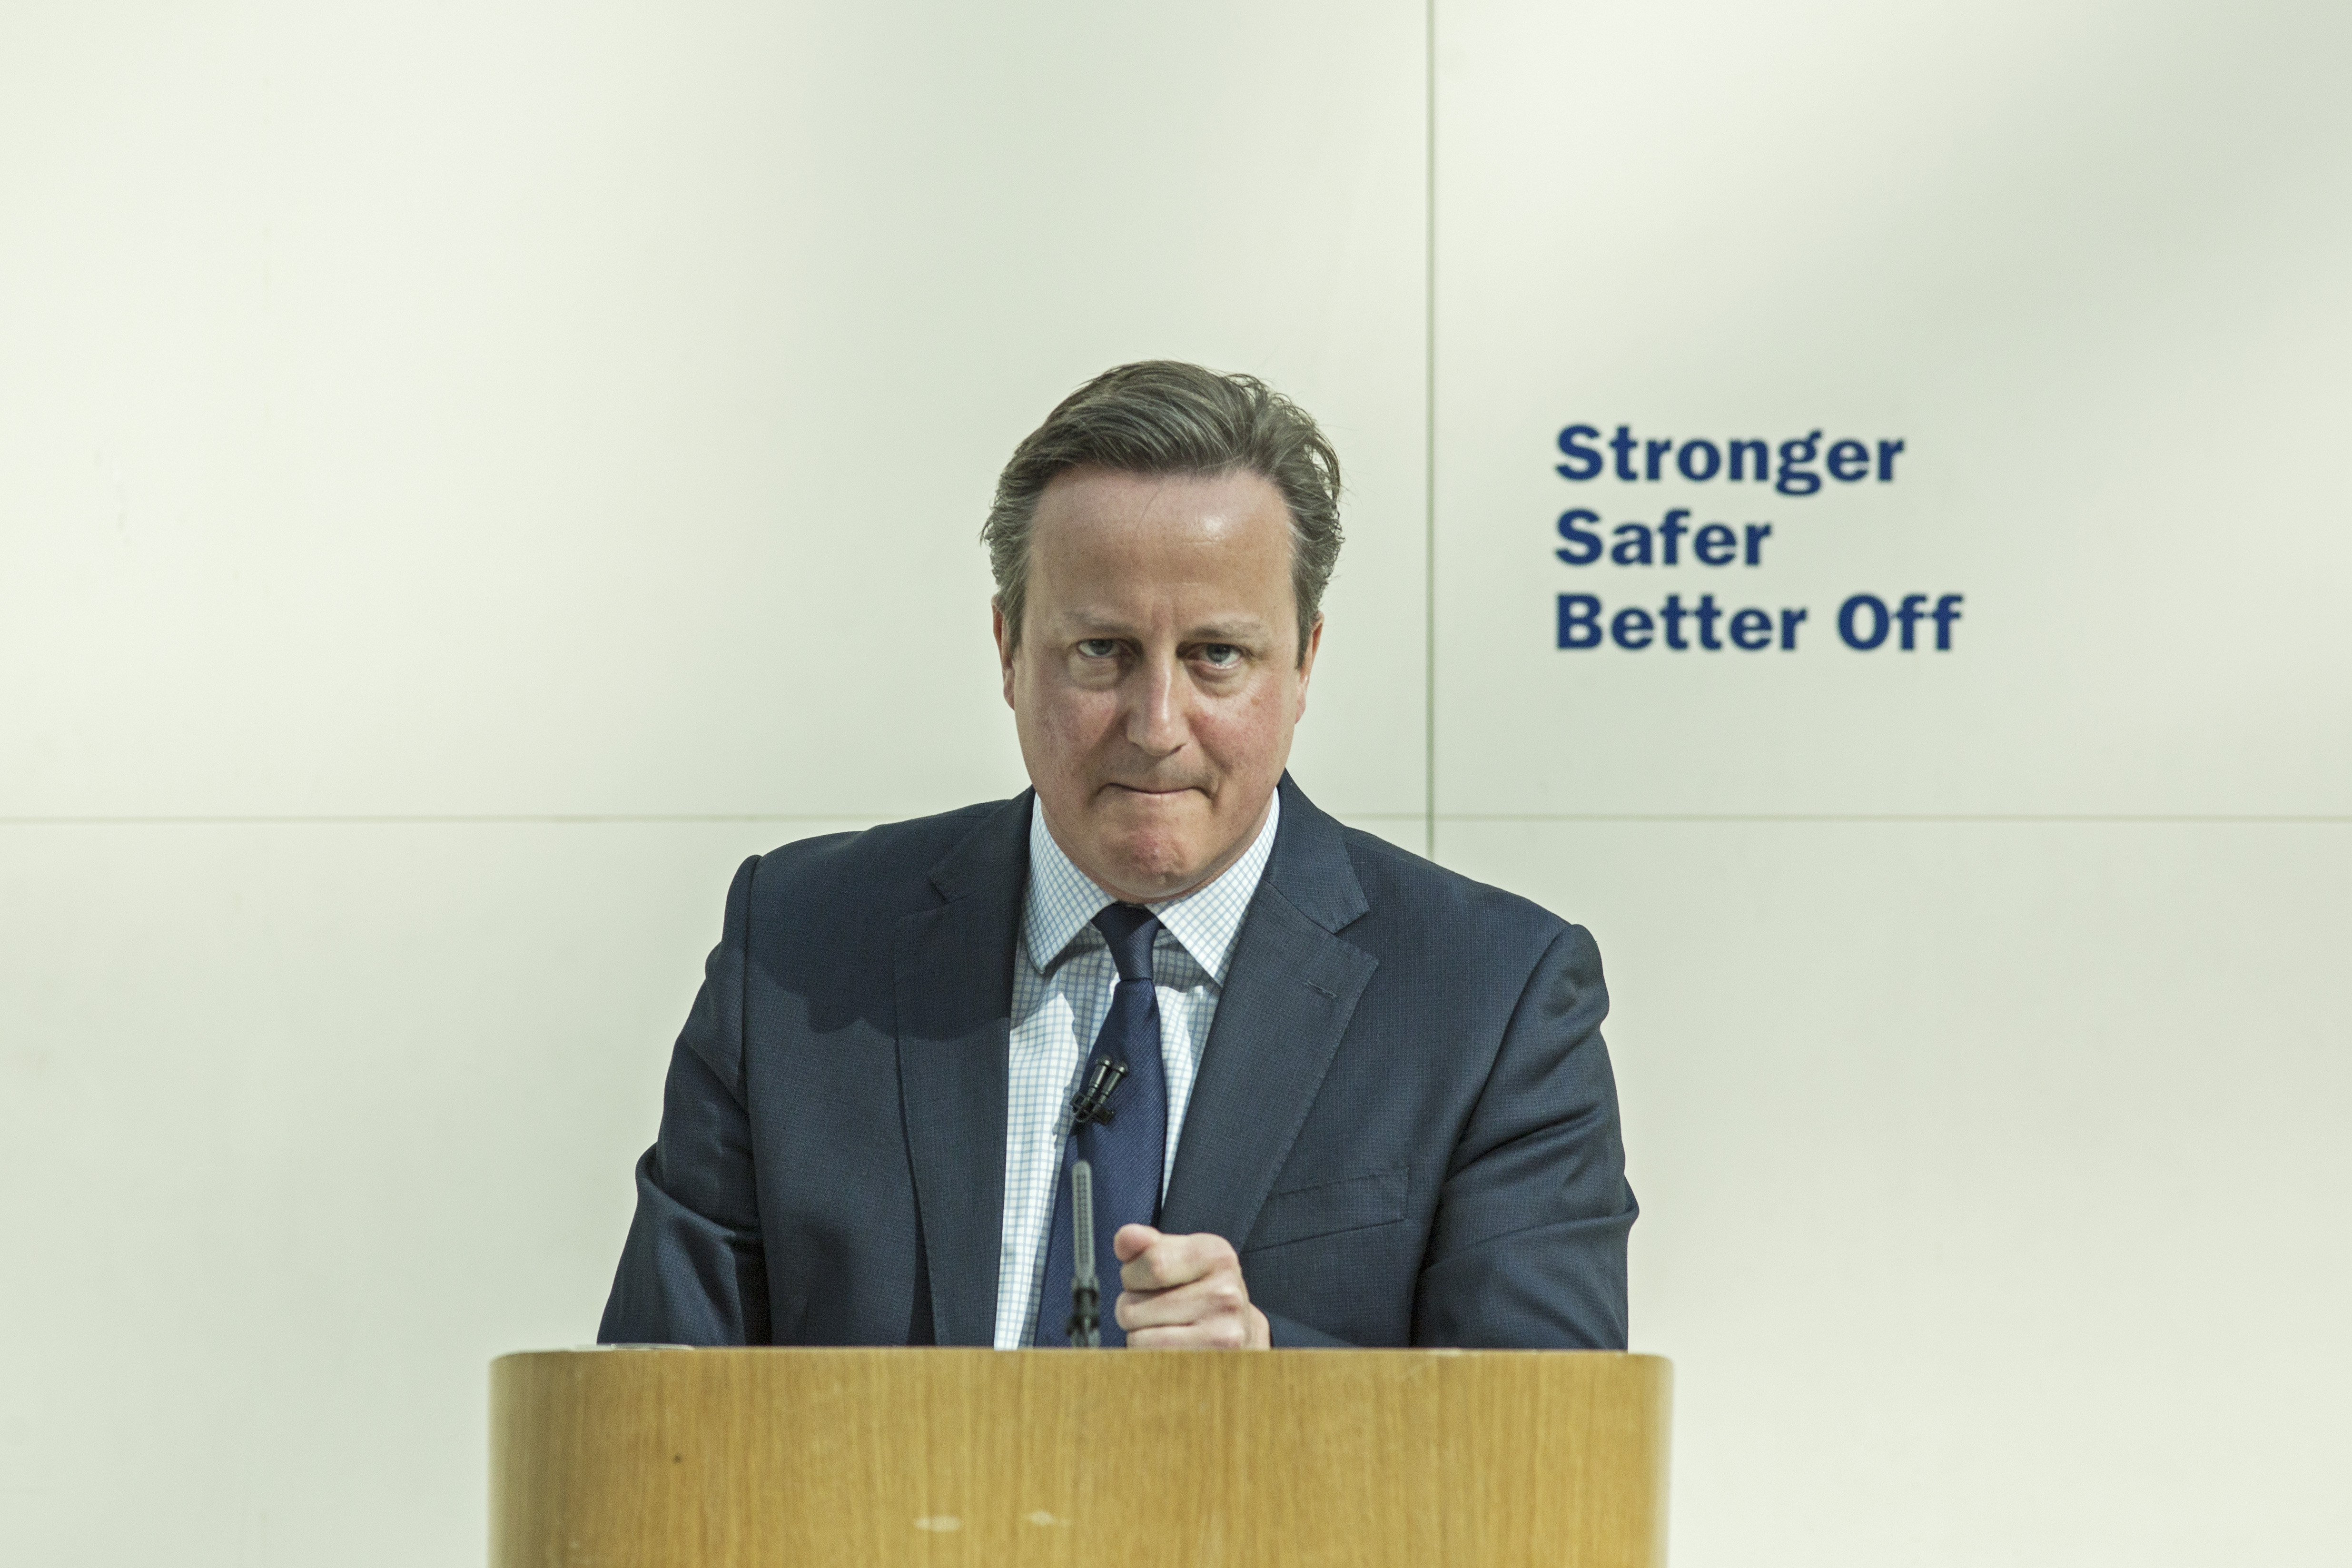 Brexit: Heres Who Could Replace David Cameron GettyImages 529580780